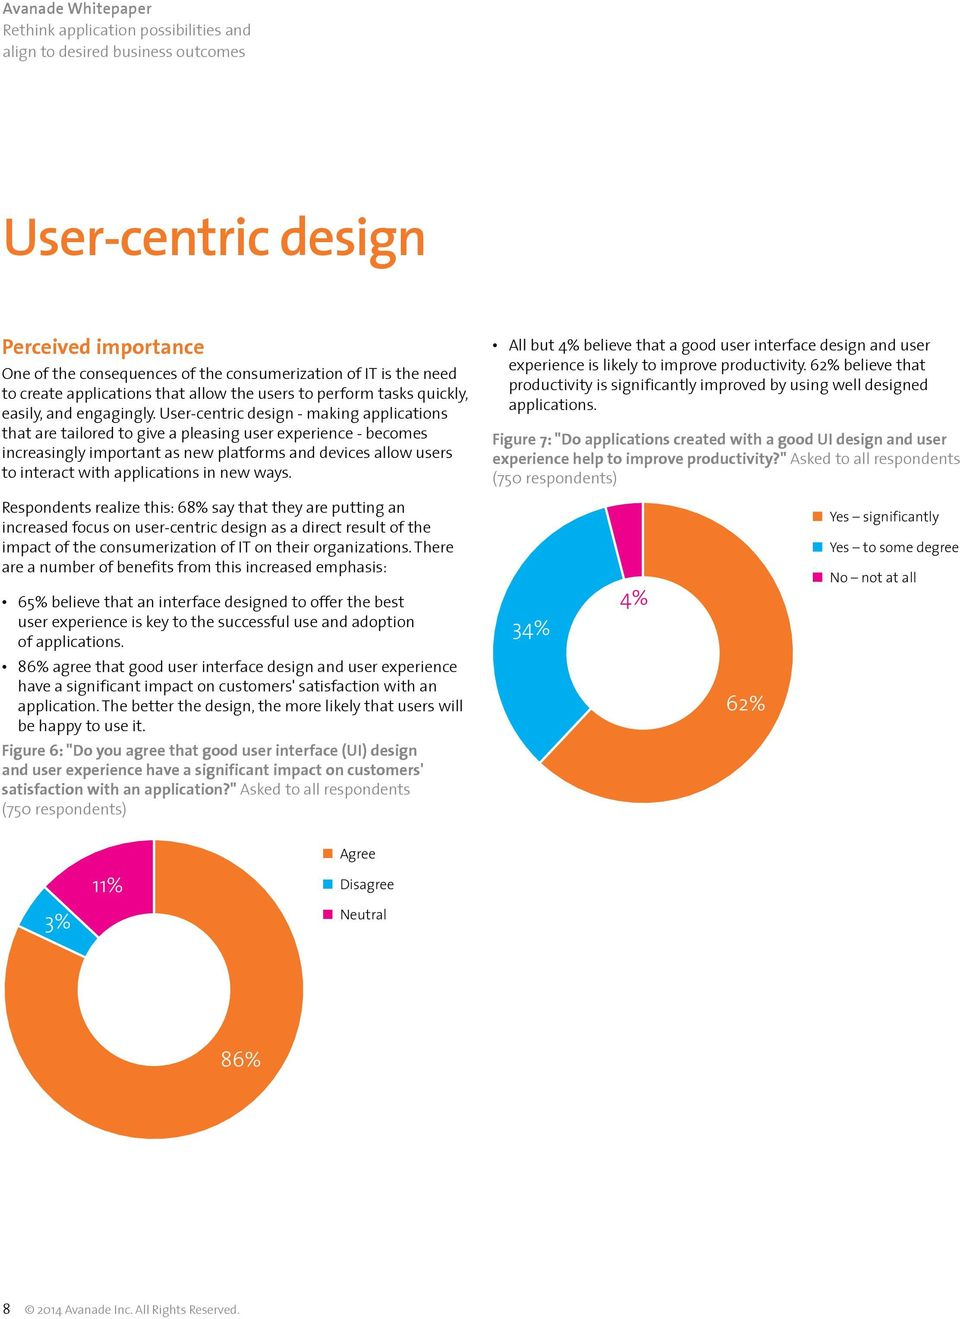 in new ways. All but 4% believe that a good user interface design and user experience is likely to improve productivity.